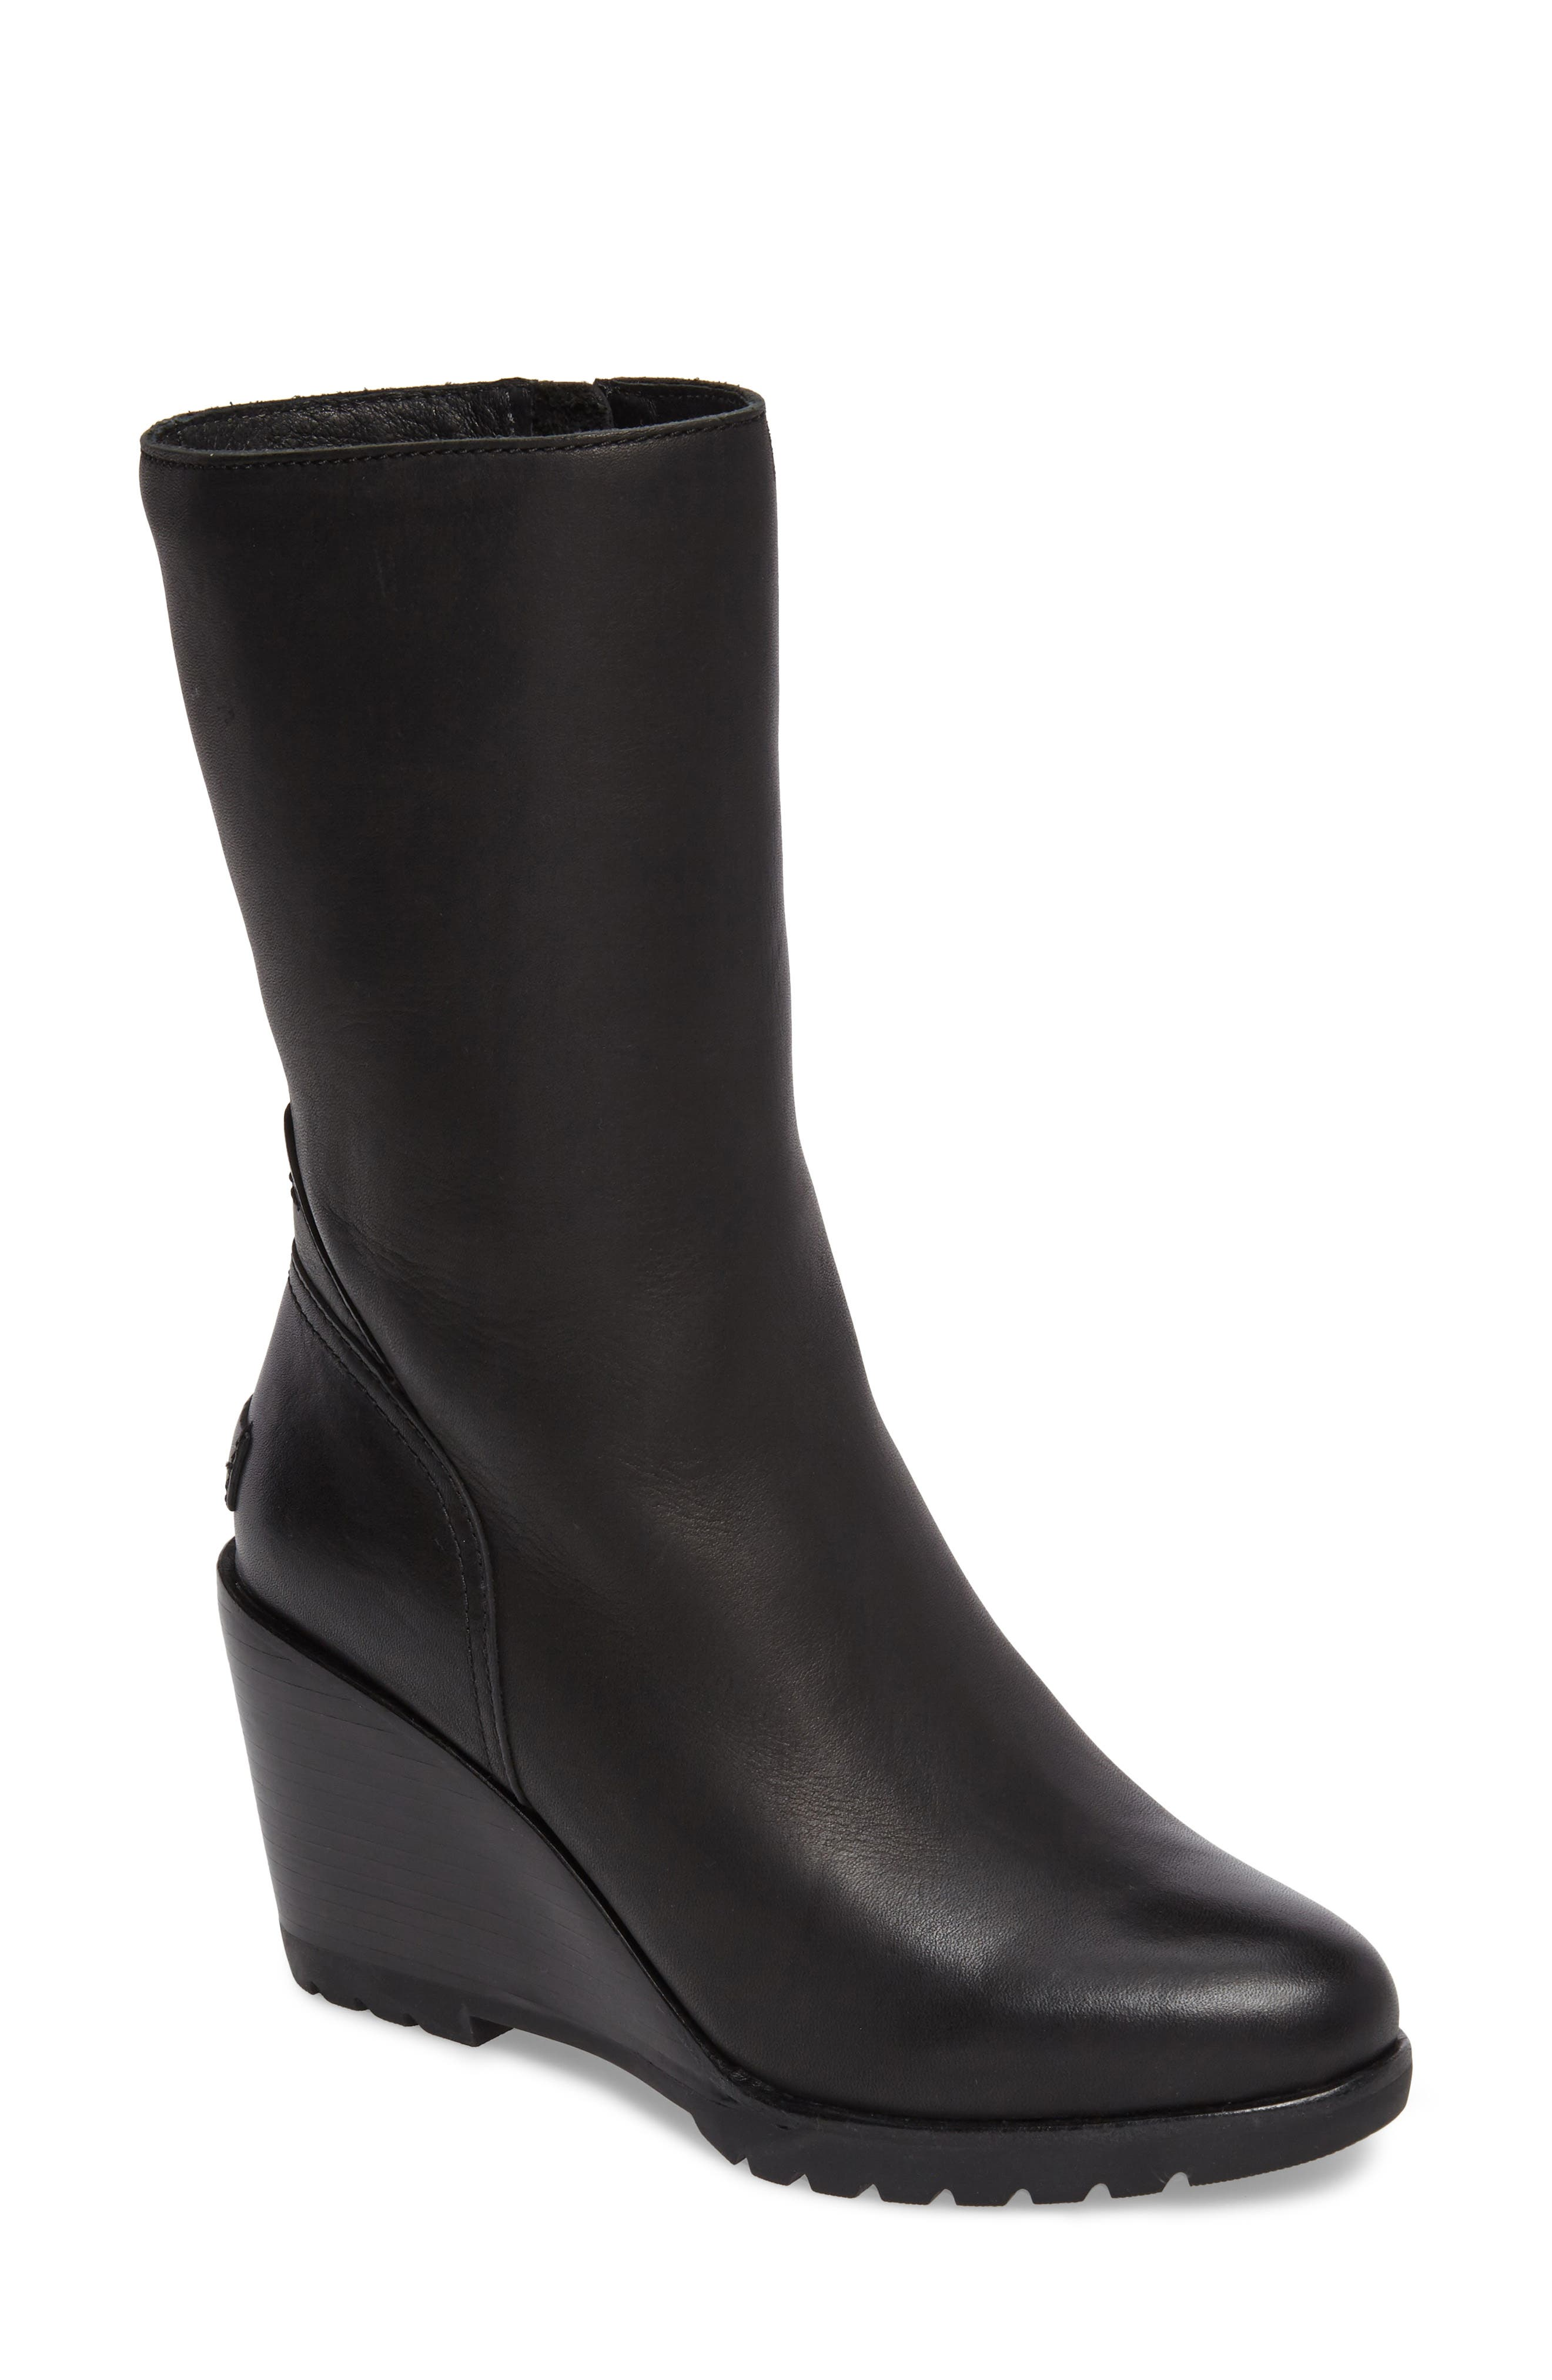 After Hours Waterproof Bootie,                             Main thumbnail 1, color,                             Black